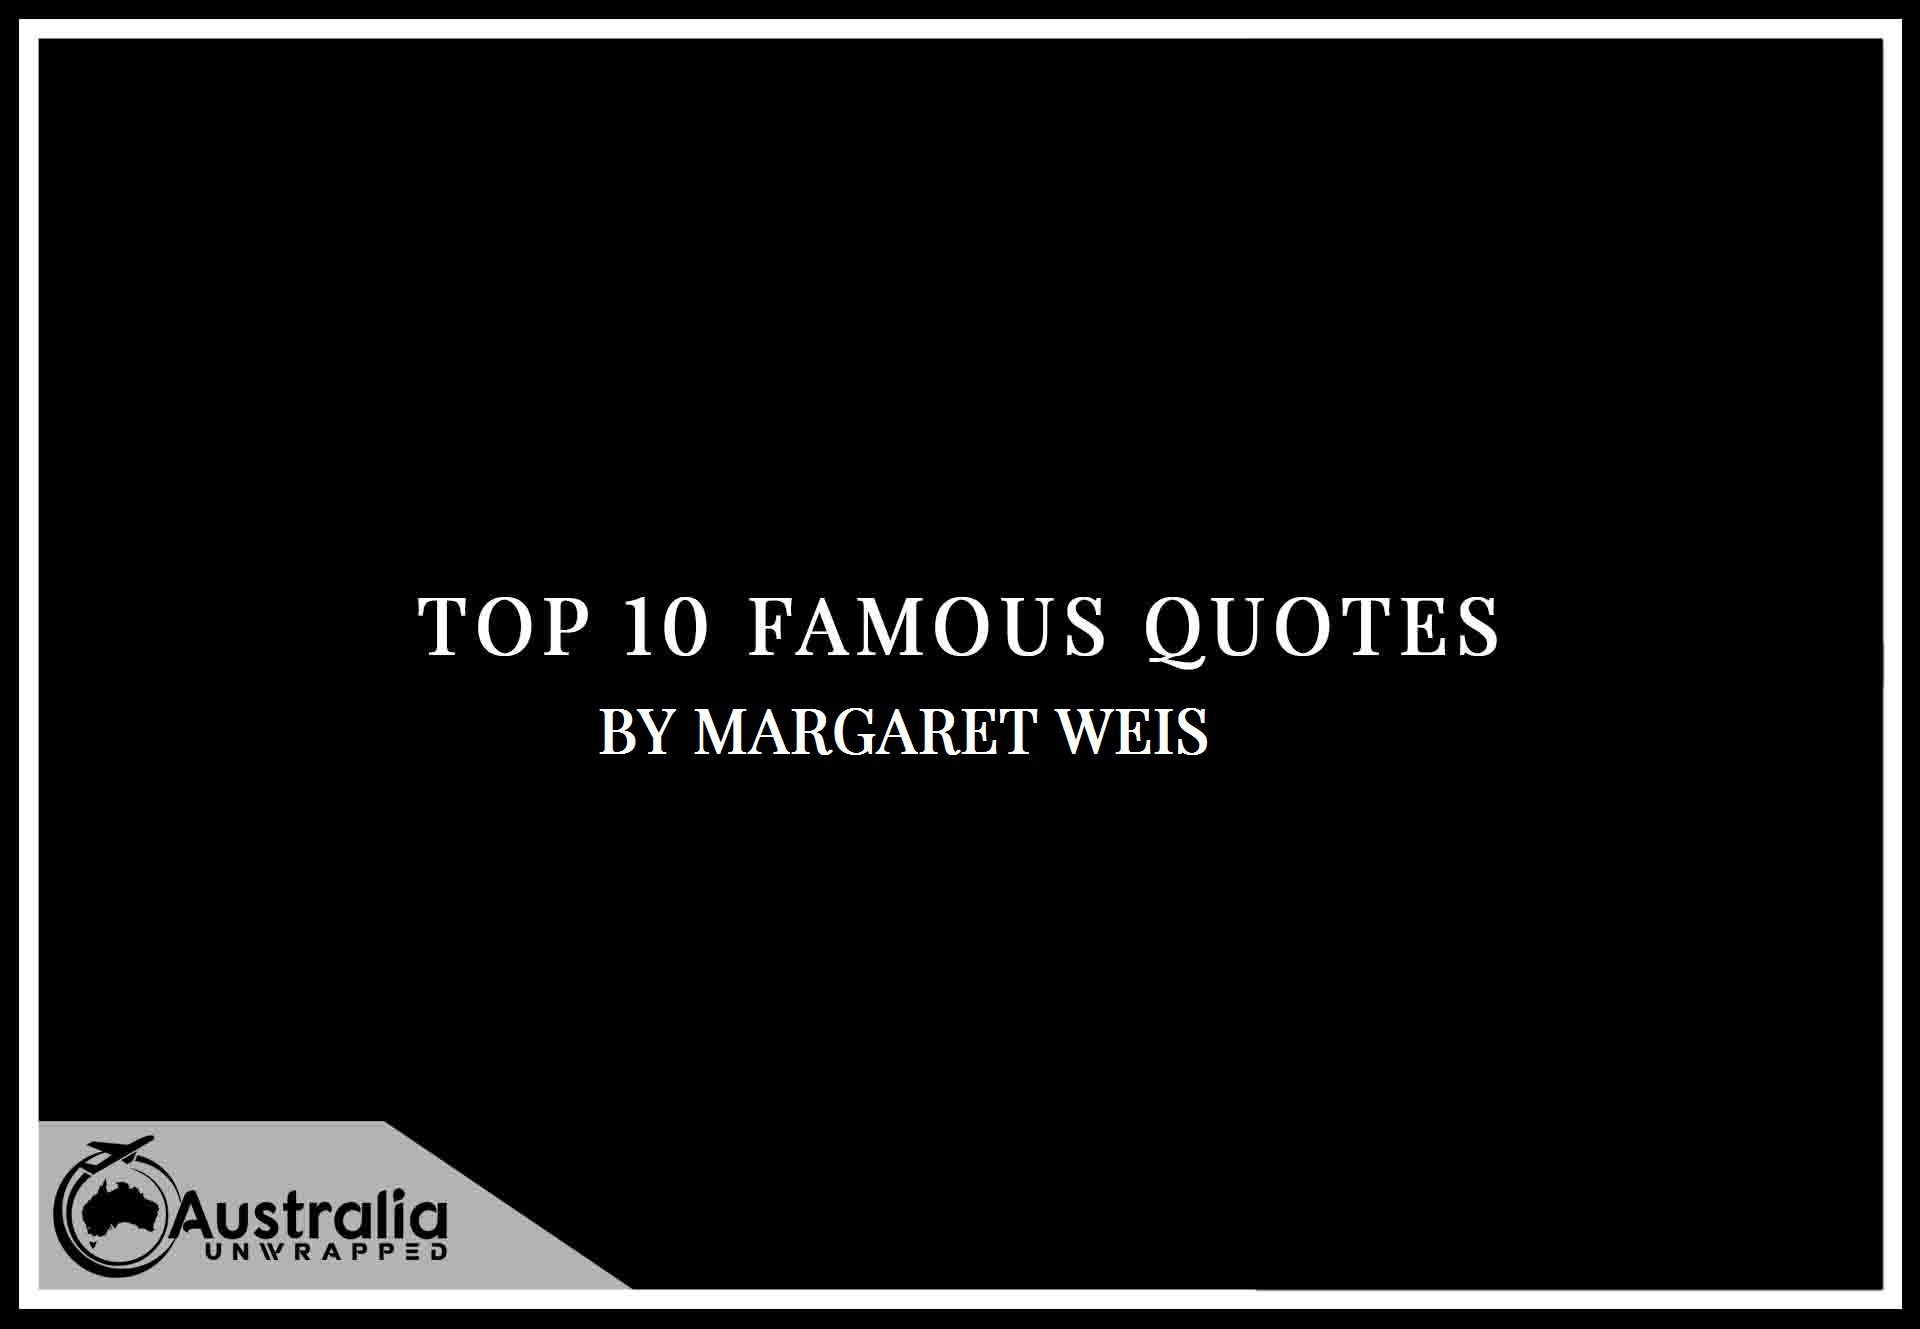 Margaret Weis's Top 10 Popular and Famous Quotes